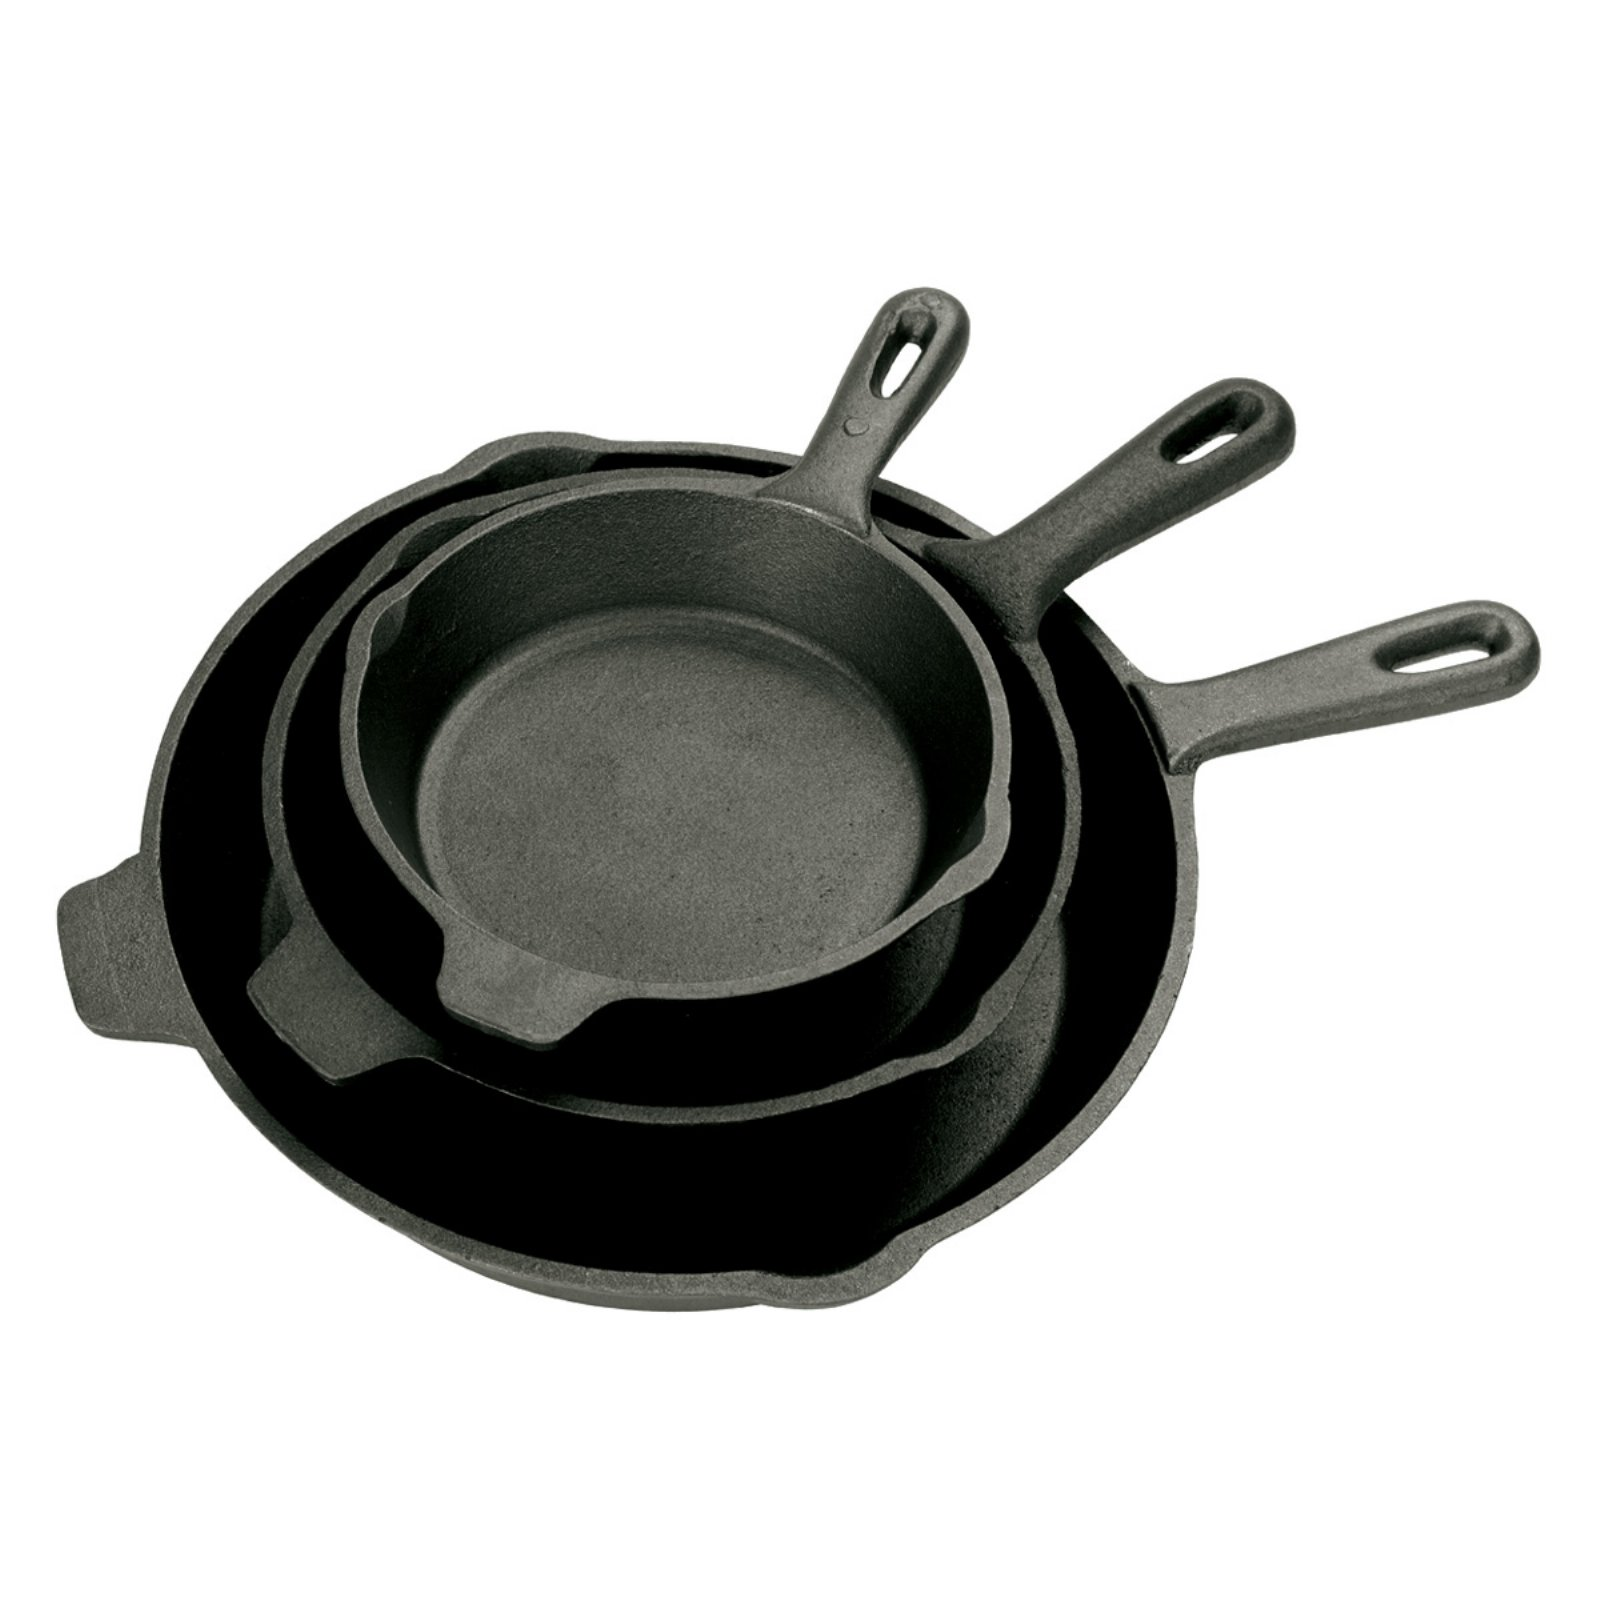 Bayou Classics Cast Iron Skillet - Set of 3